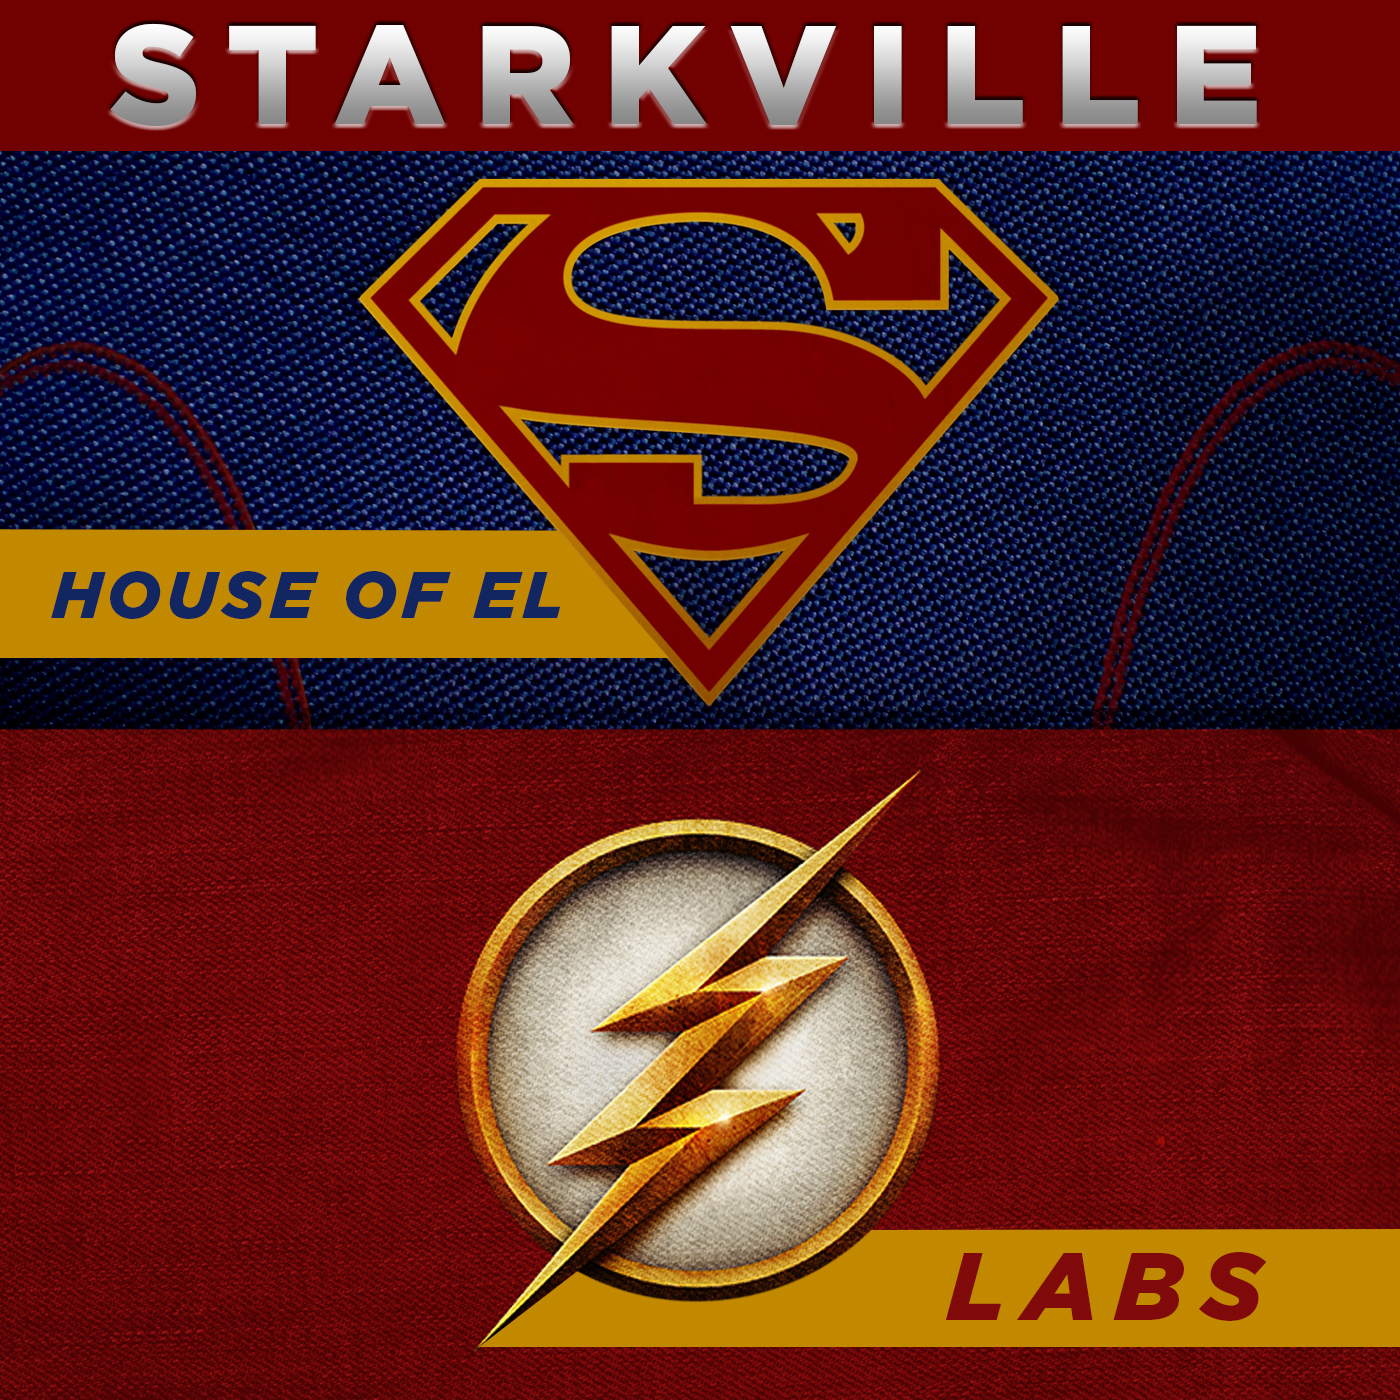 Episodes - Find the latest episodes of Starkville's House of El and Starkville Labs here.